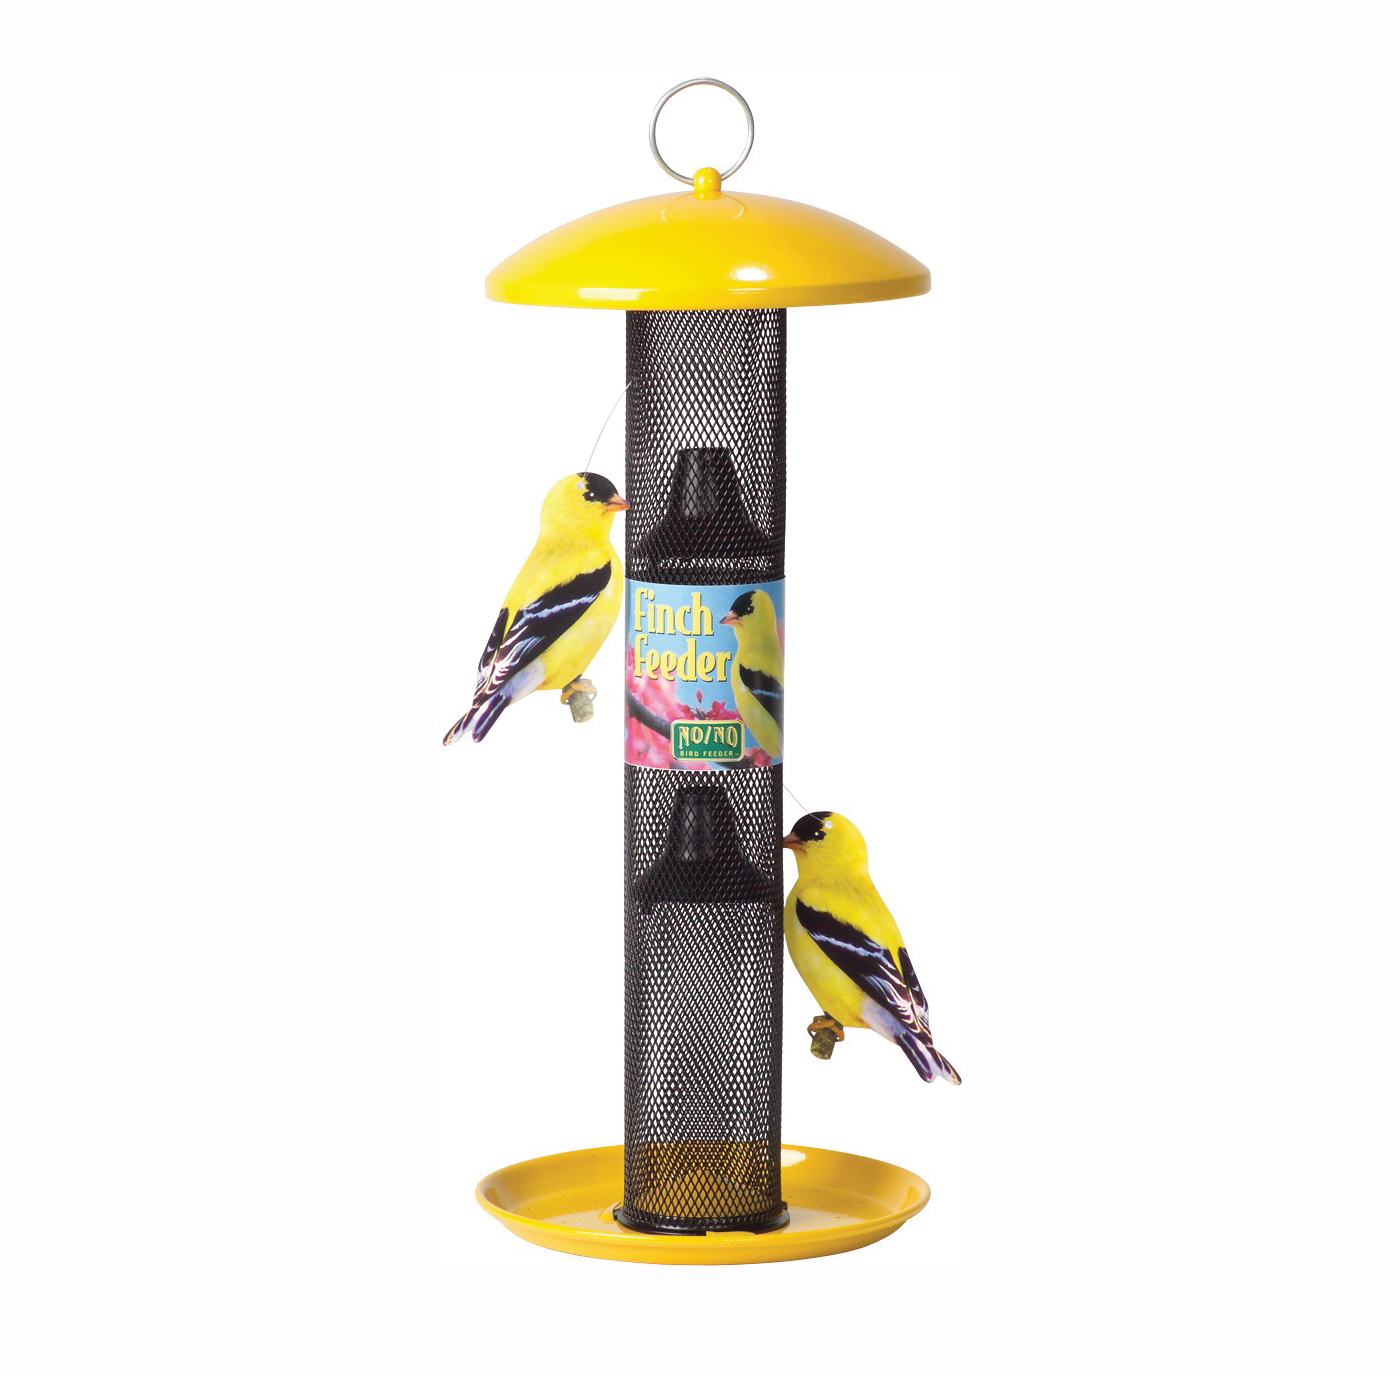 Picture of Perky-Pet NO/NO YSSF00346 Wild Bird Feeder, 18-13/16 in H, 1.5 lb, Metal, Yellow, Powder-Coated, Hanging Mounting